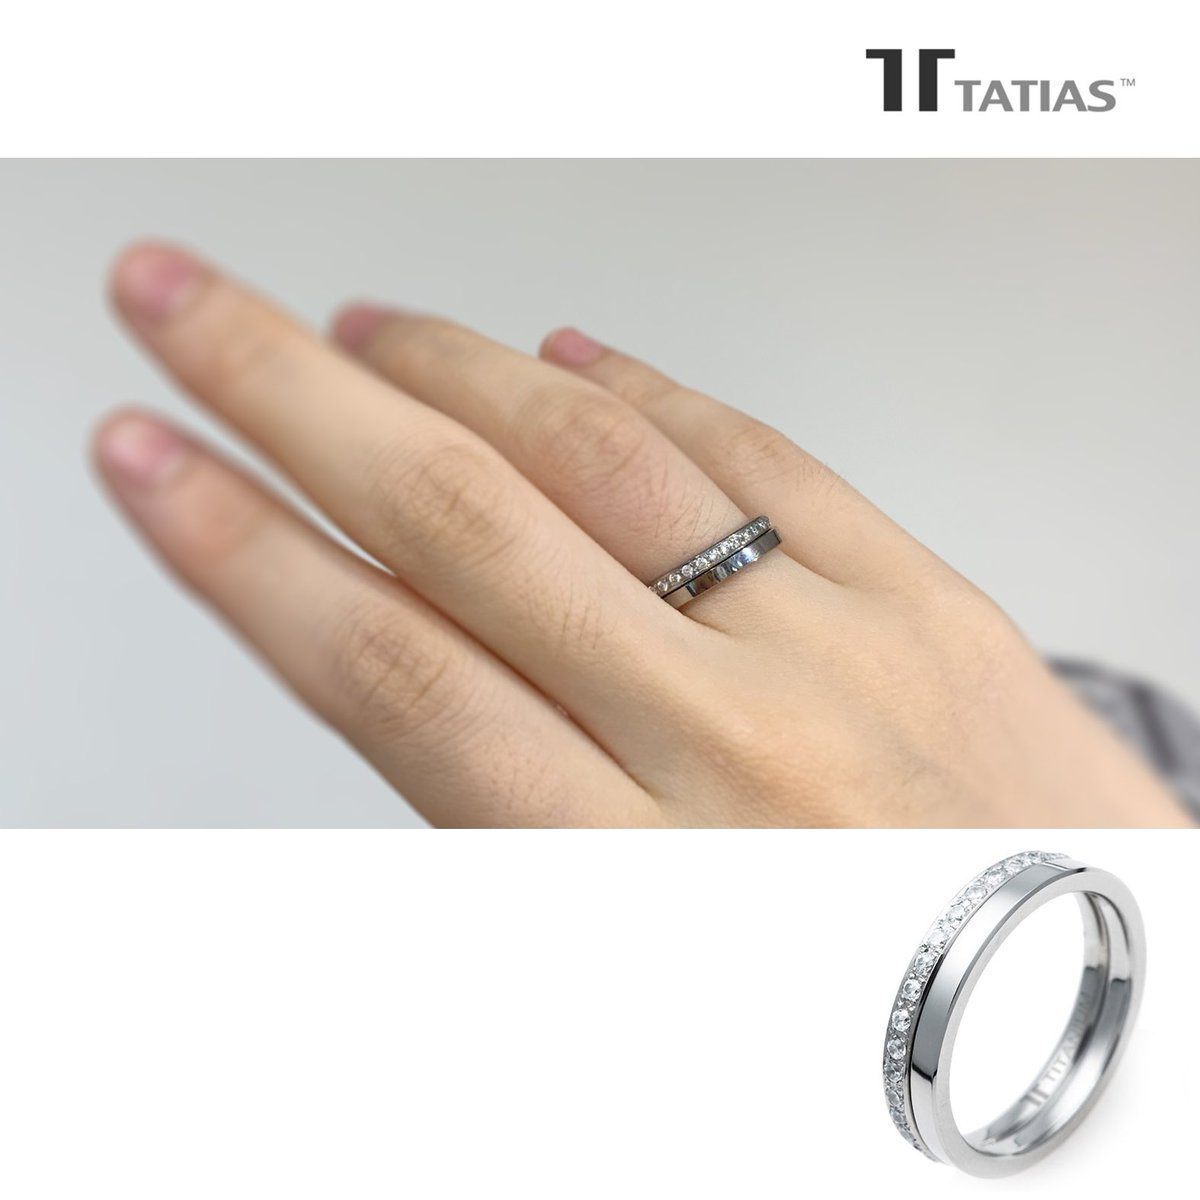 Titanium Ring T-876  Titanium has very strong and light properties and has no corrosion or discoloration, so it does not change even when touched by seawater.  Visit our website for more informations. https://en.tatias.com/product/t-876/2121/?cate_no=78&display_group=1…  #TATIAS #CoupleRing #TitaniumRing #Ring  #dailylook pic.twitter.com/o7BDHV4YBH